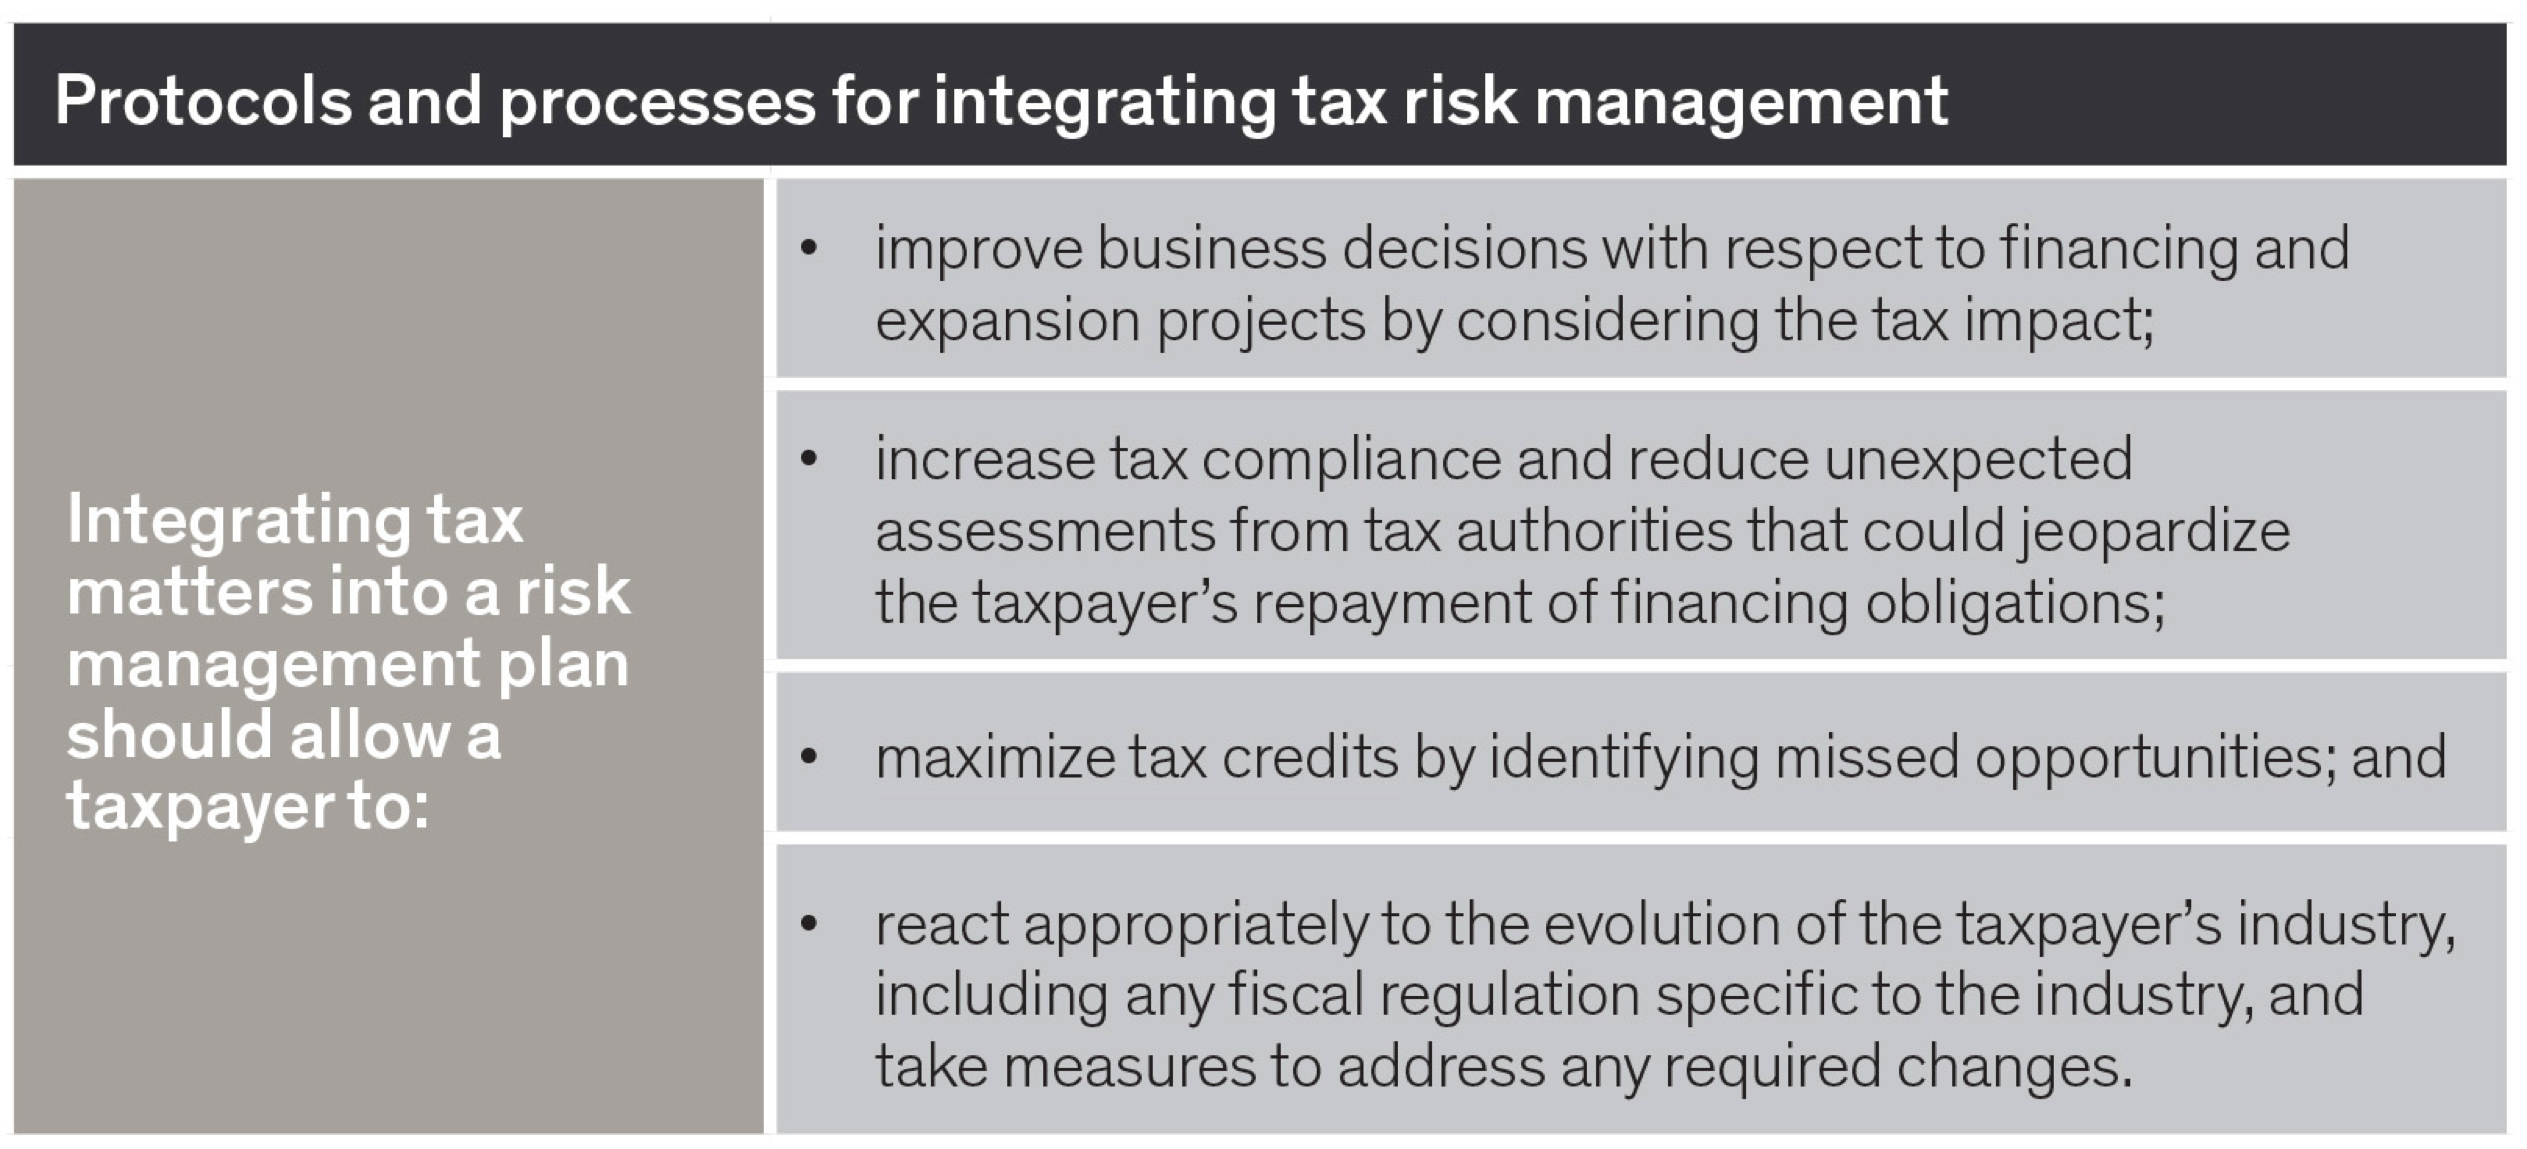 protocols and processes for integrating tax risk management - graph